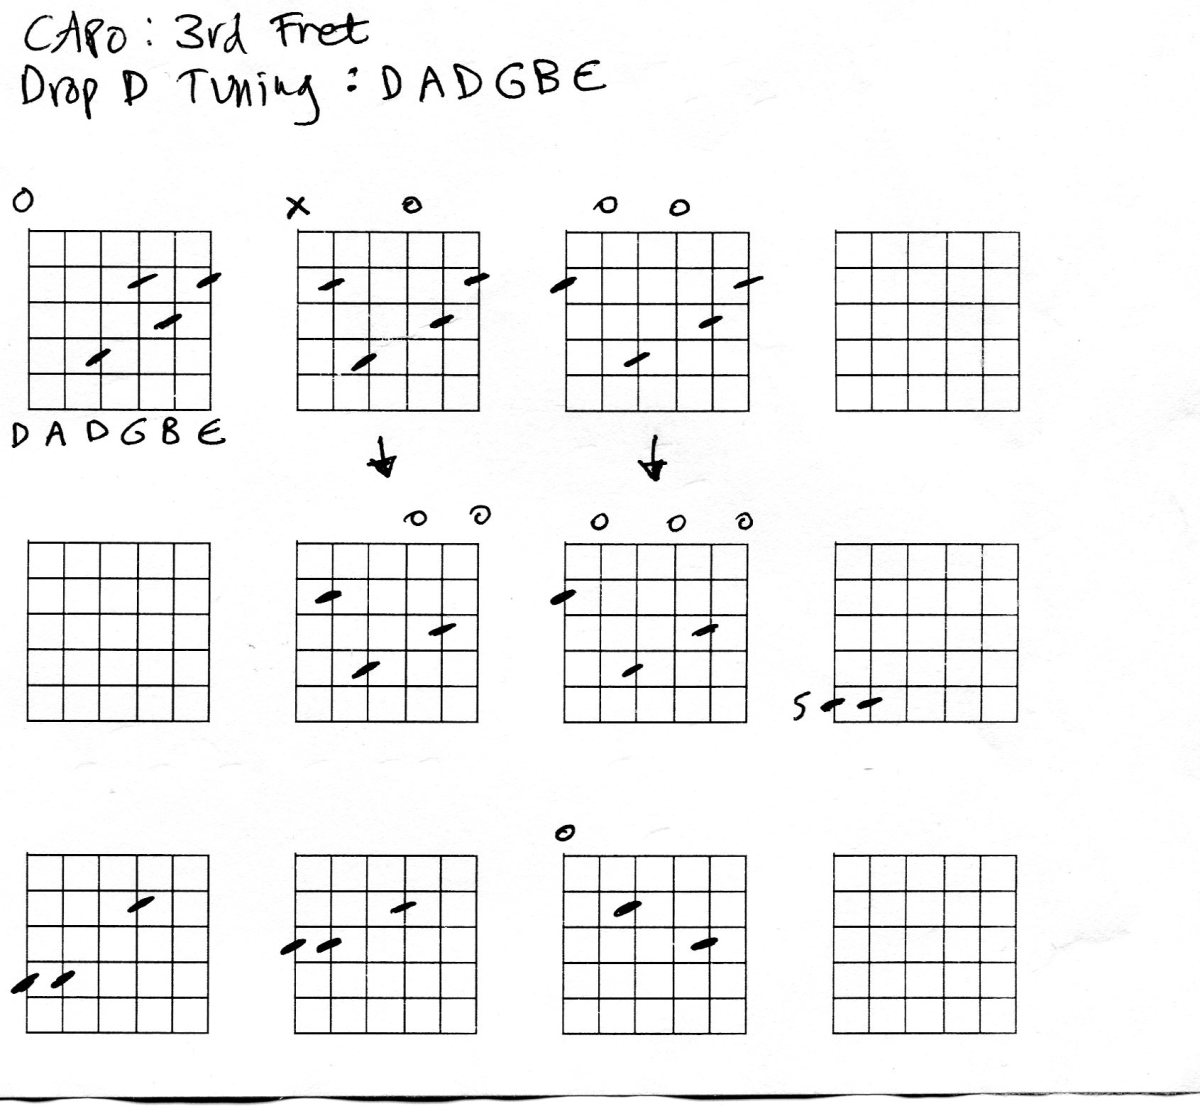 Guitar chords in Drop D tuning